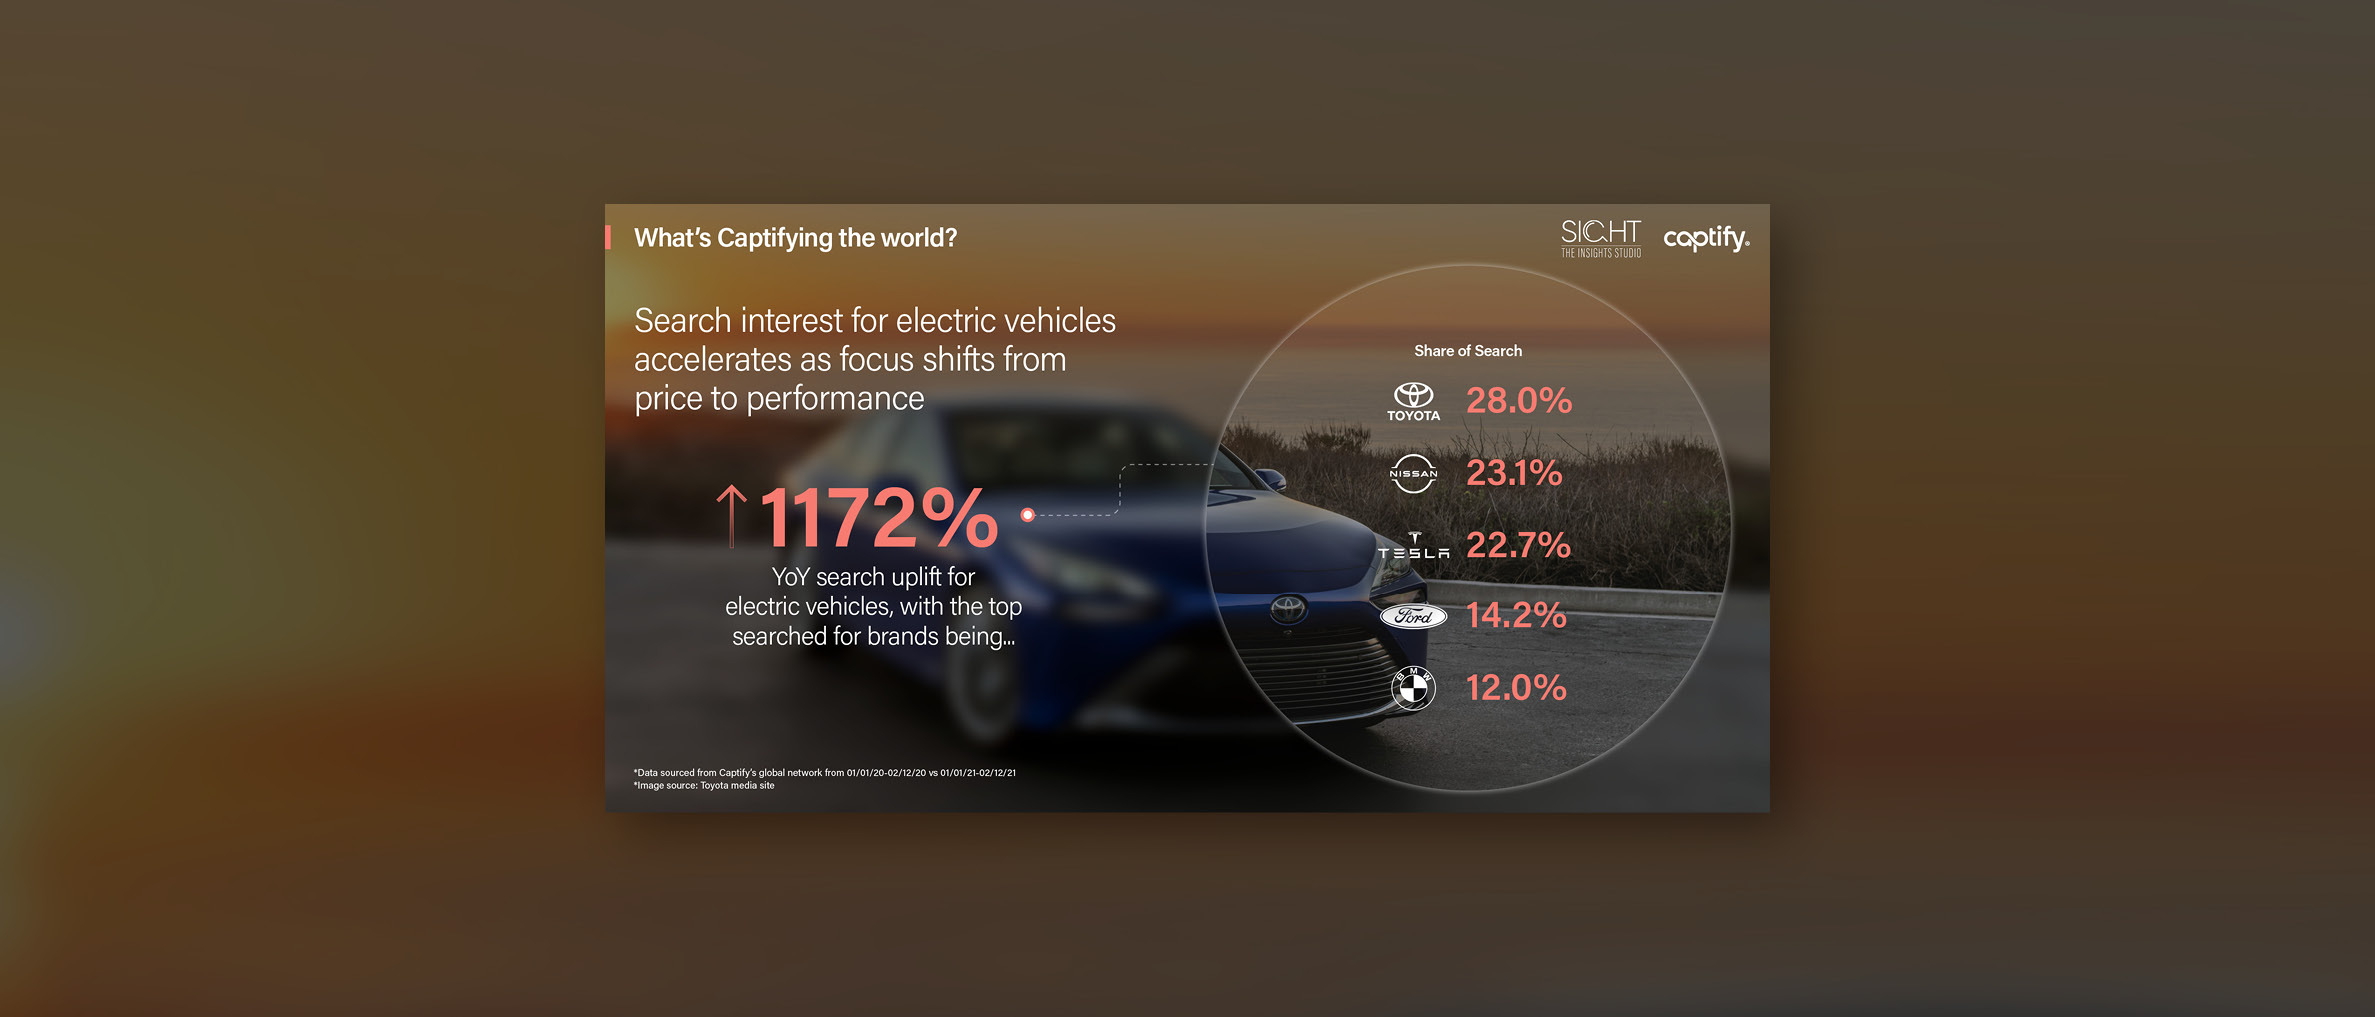 What's Captifying the world: New launch announcements in Q1 accelerate search interest for electric vehicles, with focus shifting from price to performance